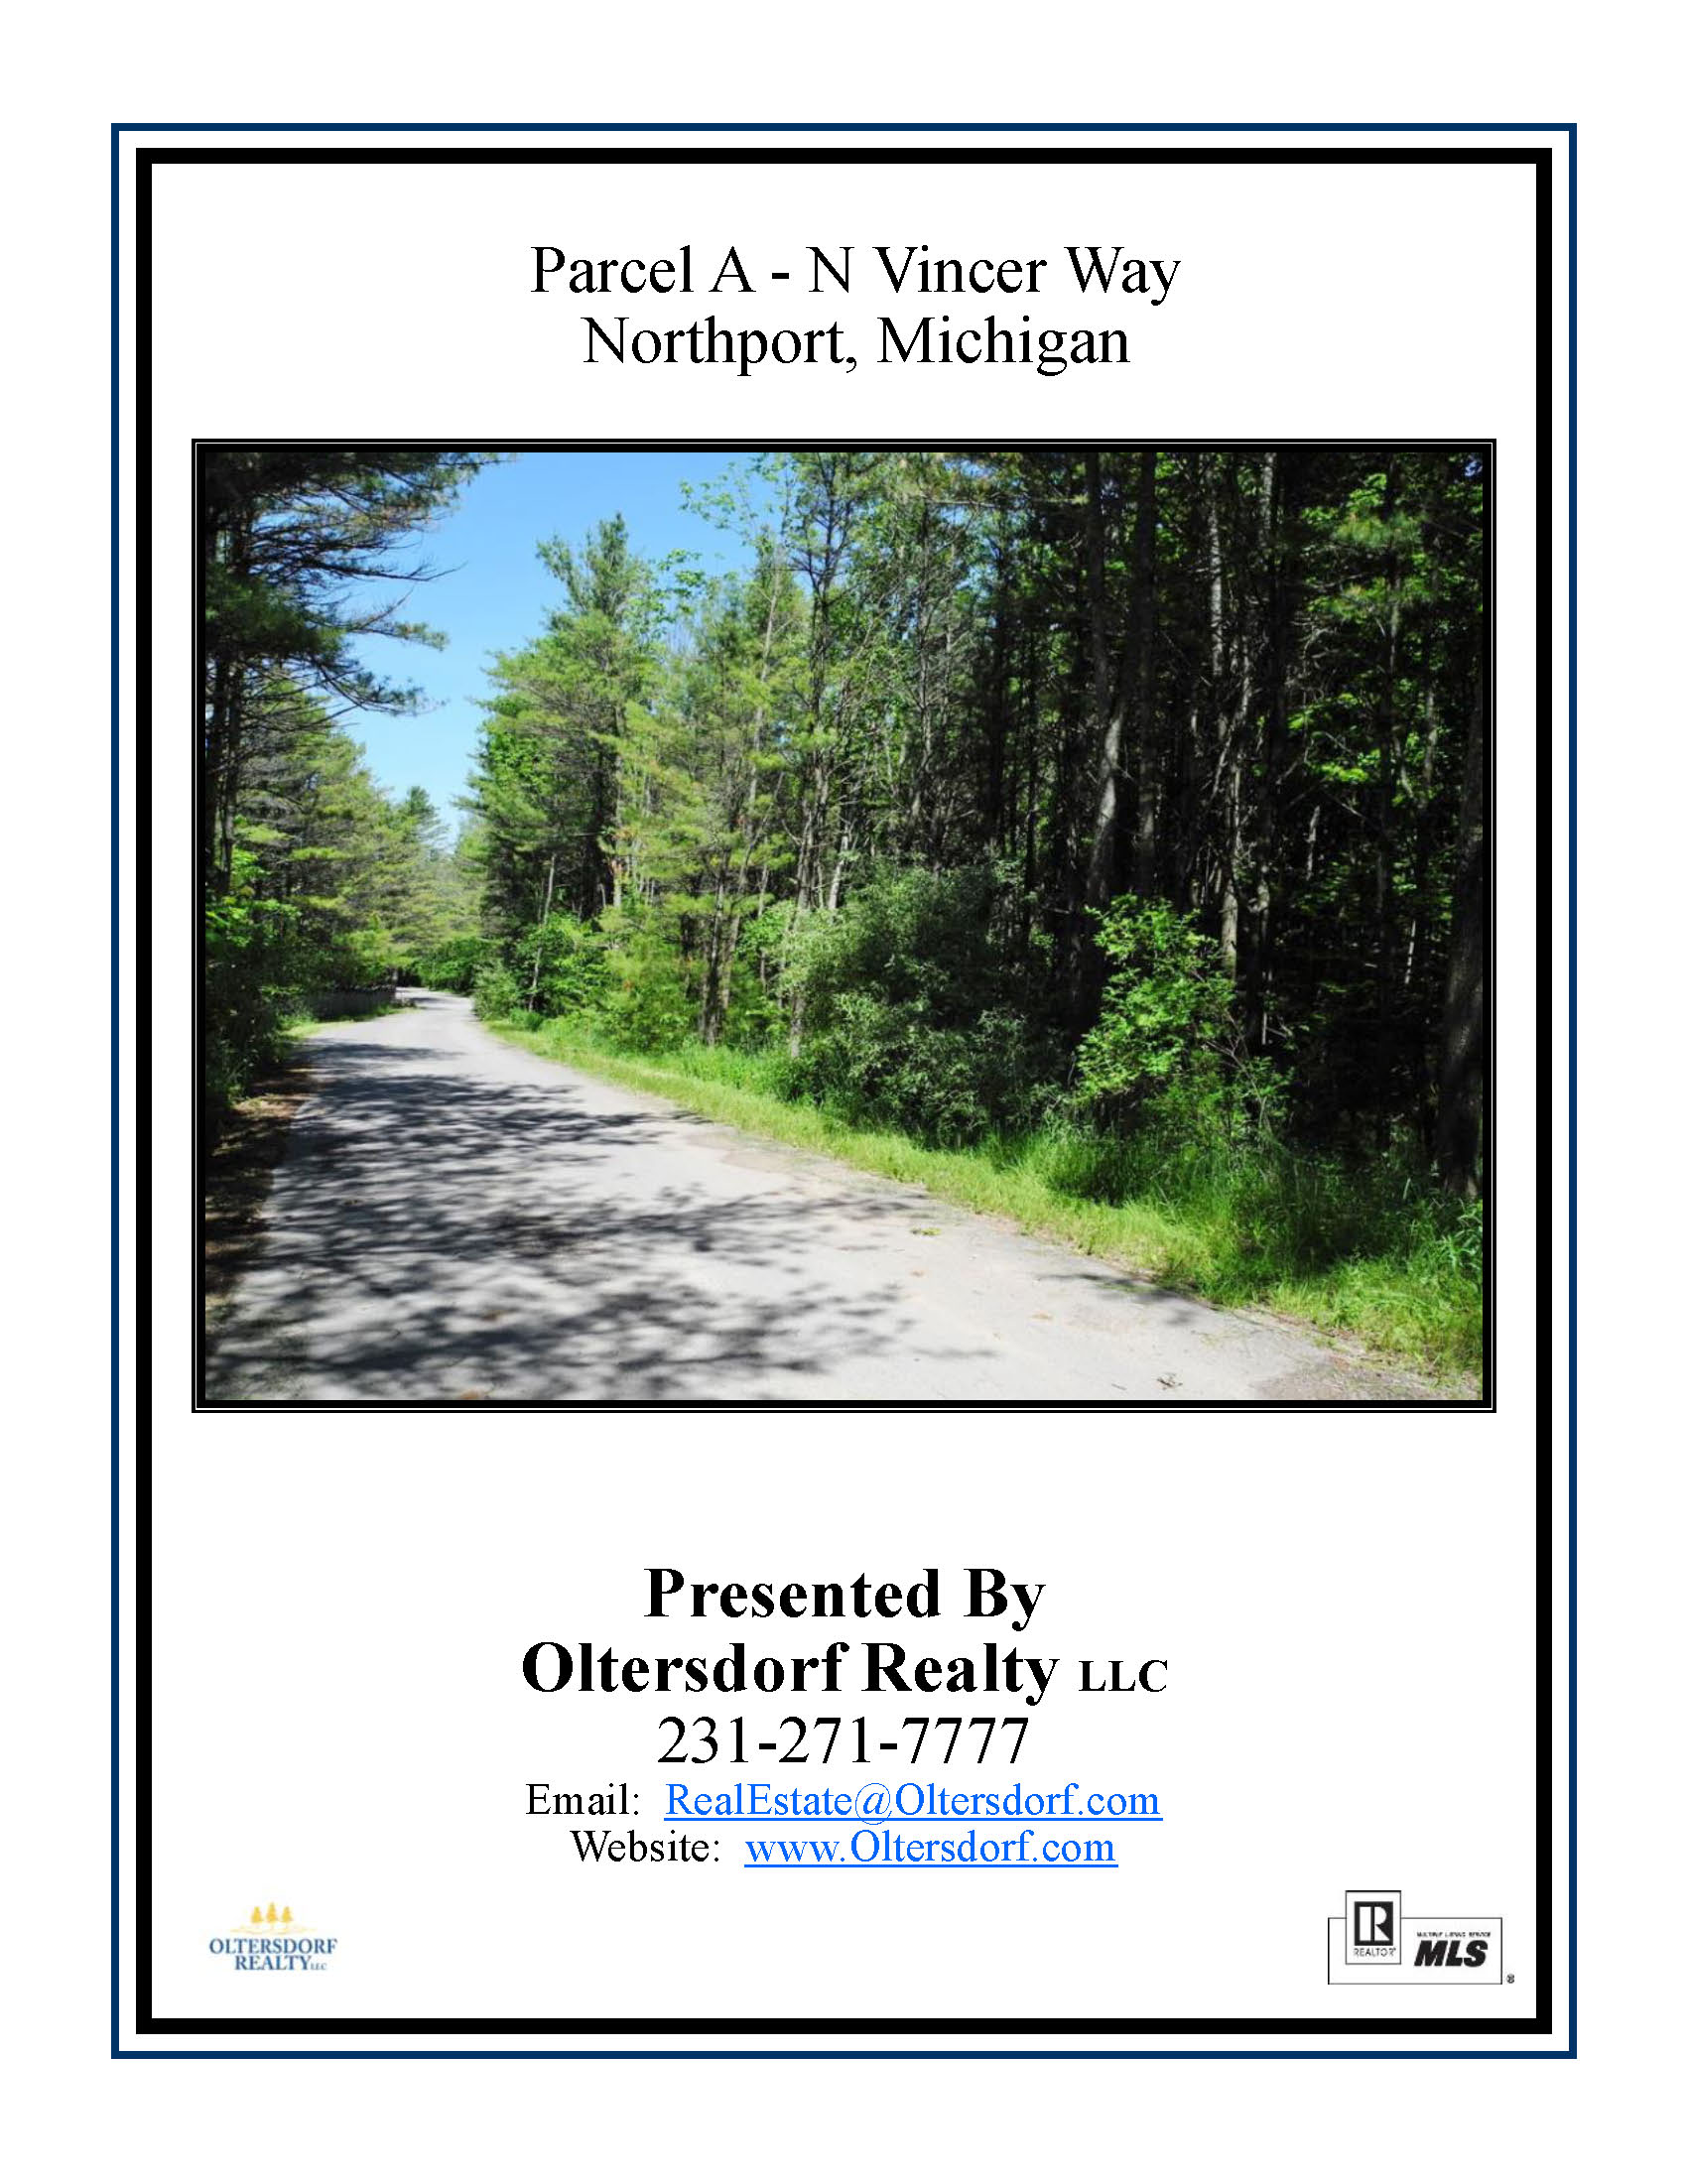 Parcel A, N Vincer Way, Northport, Leelanau County - Vacant Land for Sale by Oltersdorf Realty LLC - Marketing Packet (1).jpg